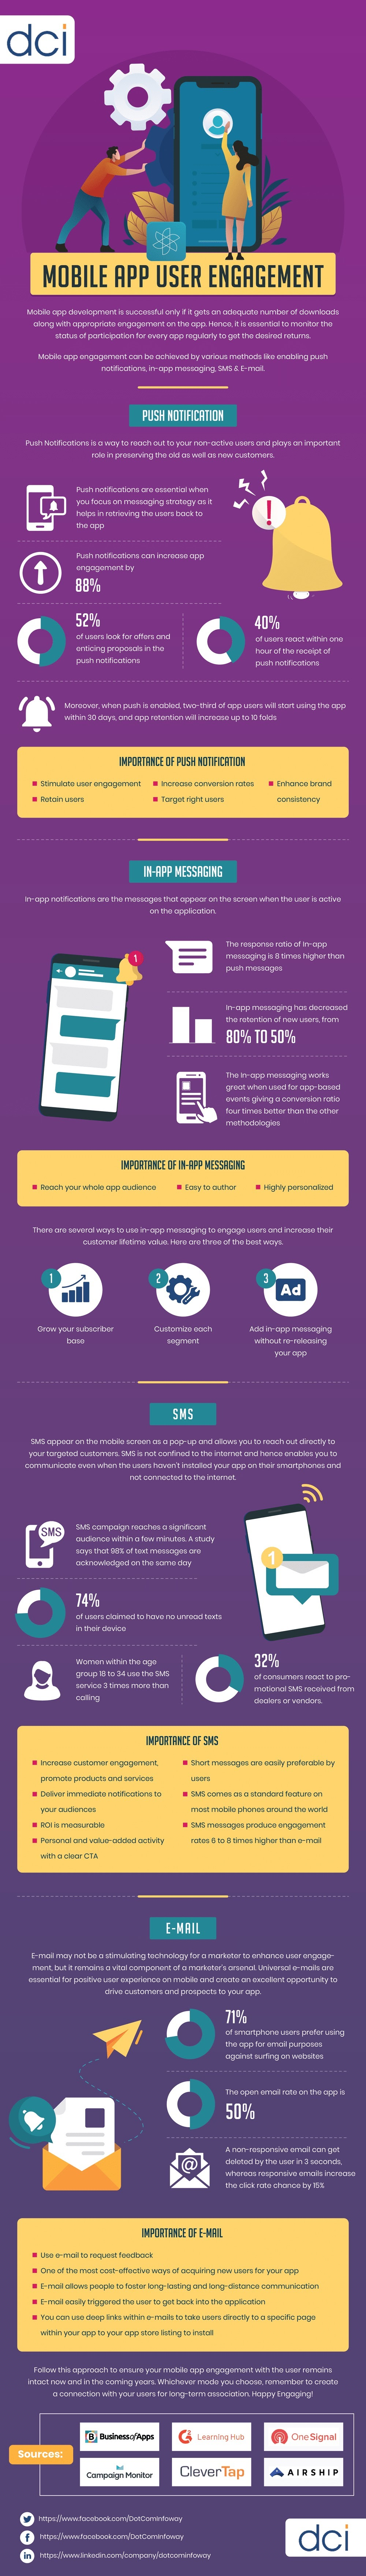 User interaction with mobile phones # infographic